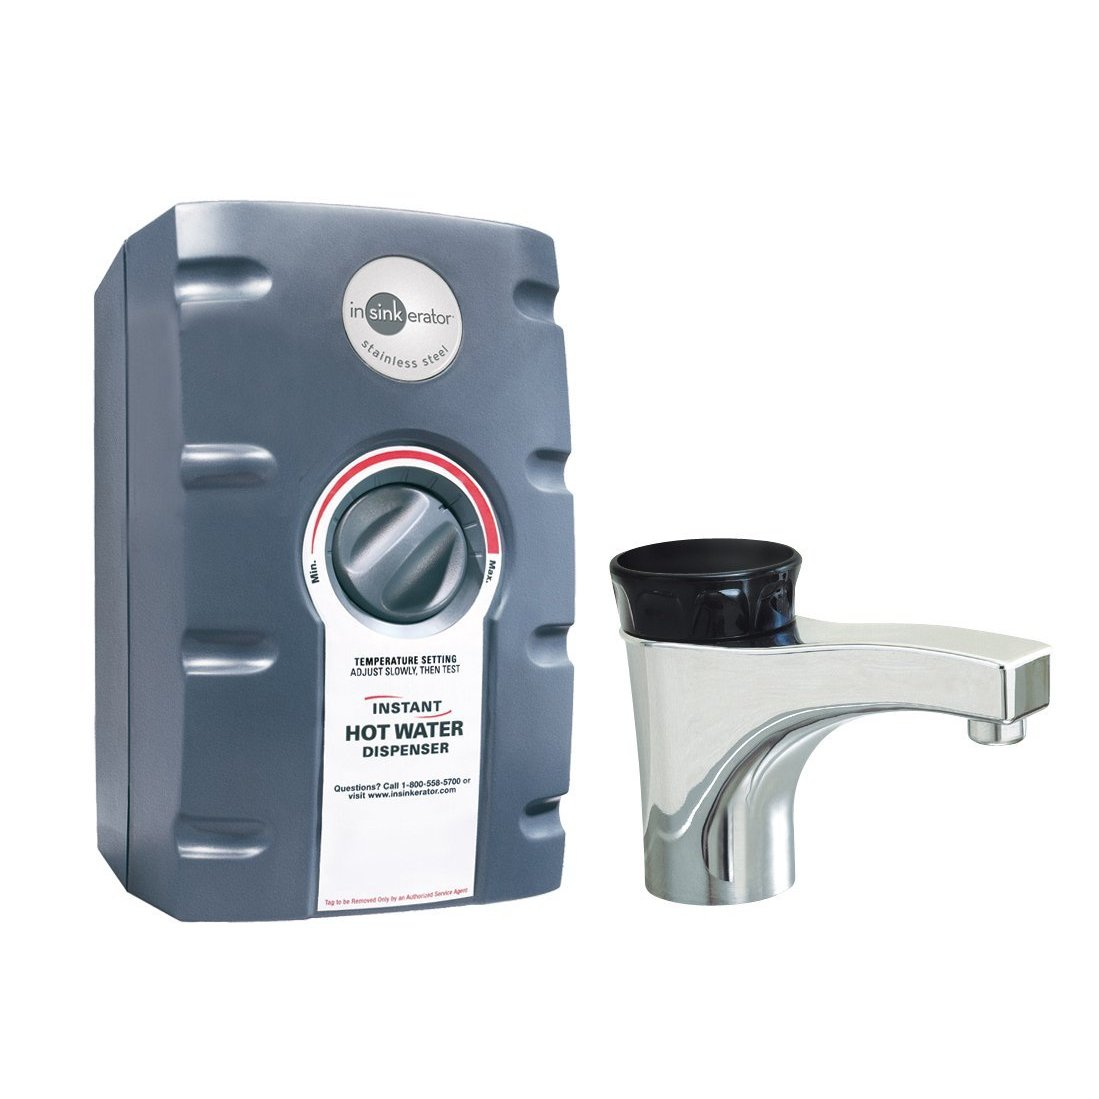 Insink : Details about InSinkErator H770-SS Hot Water Dispenser & Tank *NEW*